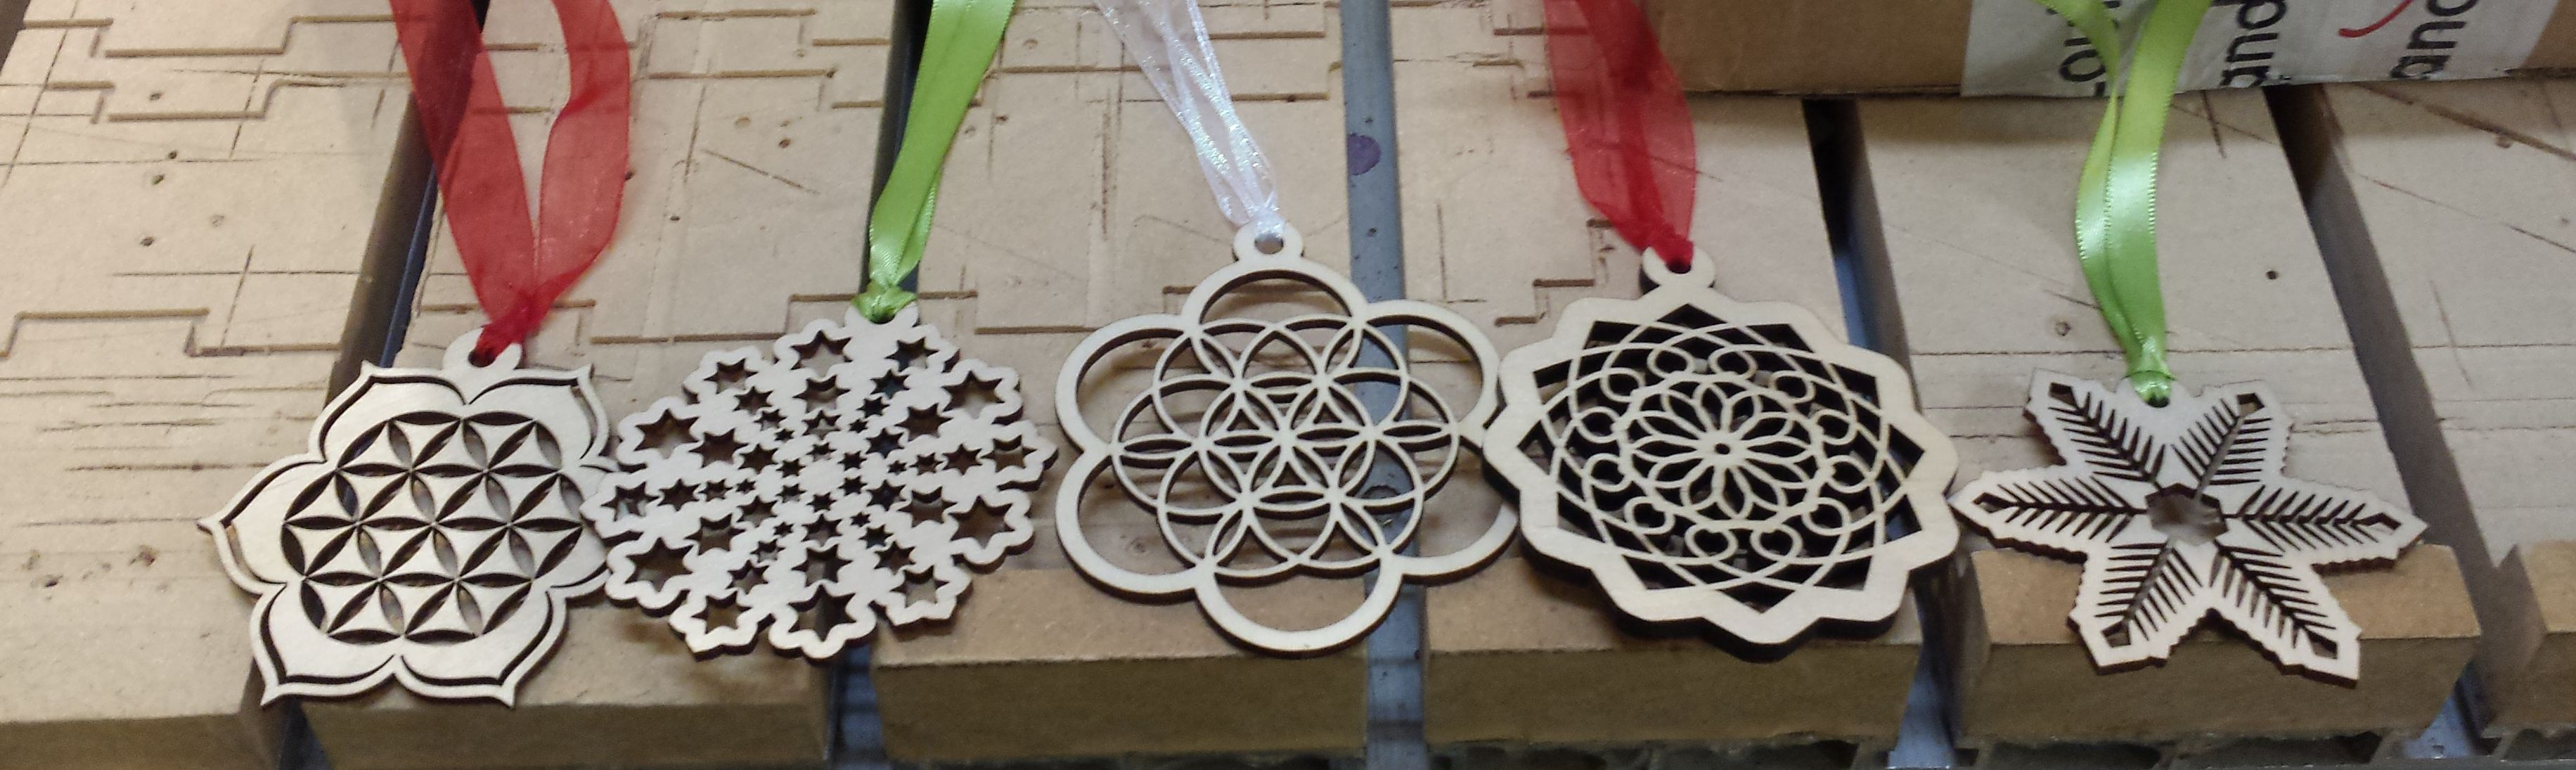 WoodLab Designs Geometric wooden ornaments with ribbon attachments